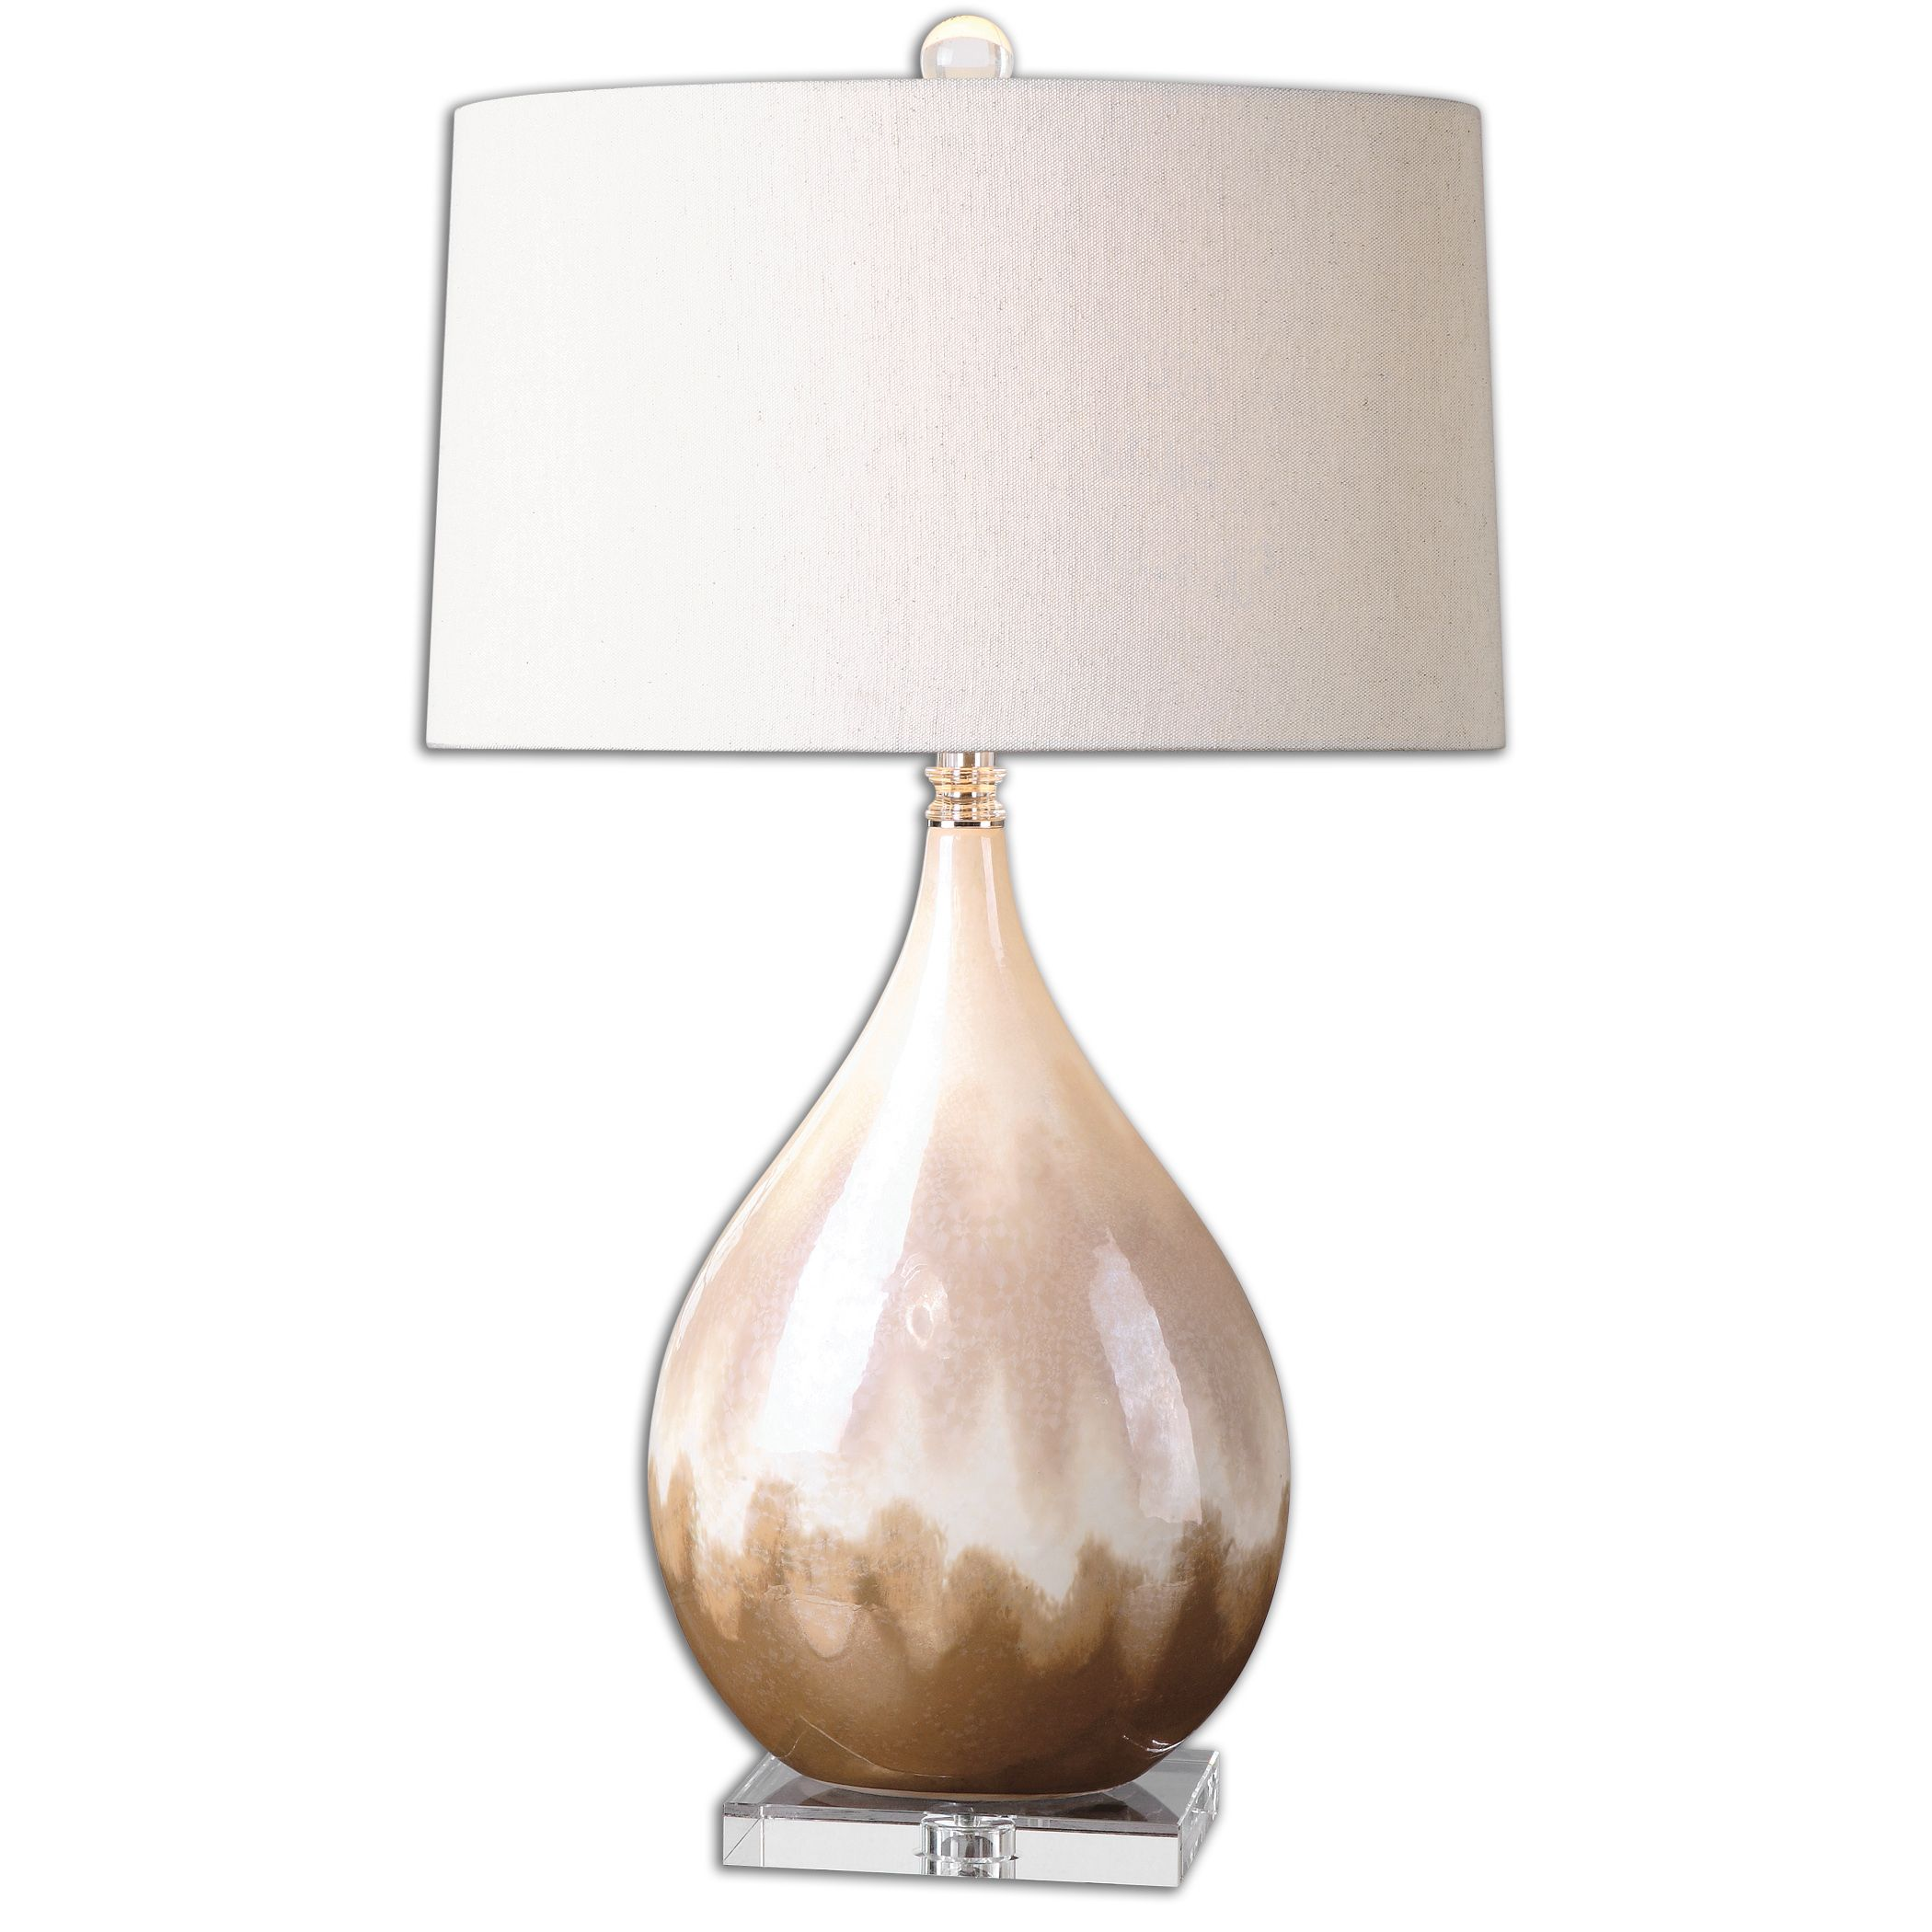 Uttermost-26171-1-Flavian - 1 Light Table Lamp  Metallic Rust Beige Glaze/Ivory/Crystal Finish with Light Beige Linen Fabric Shade